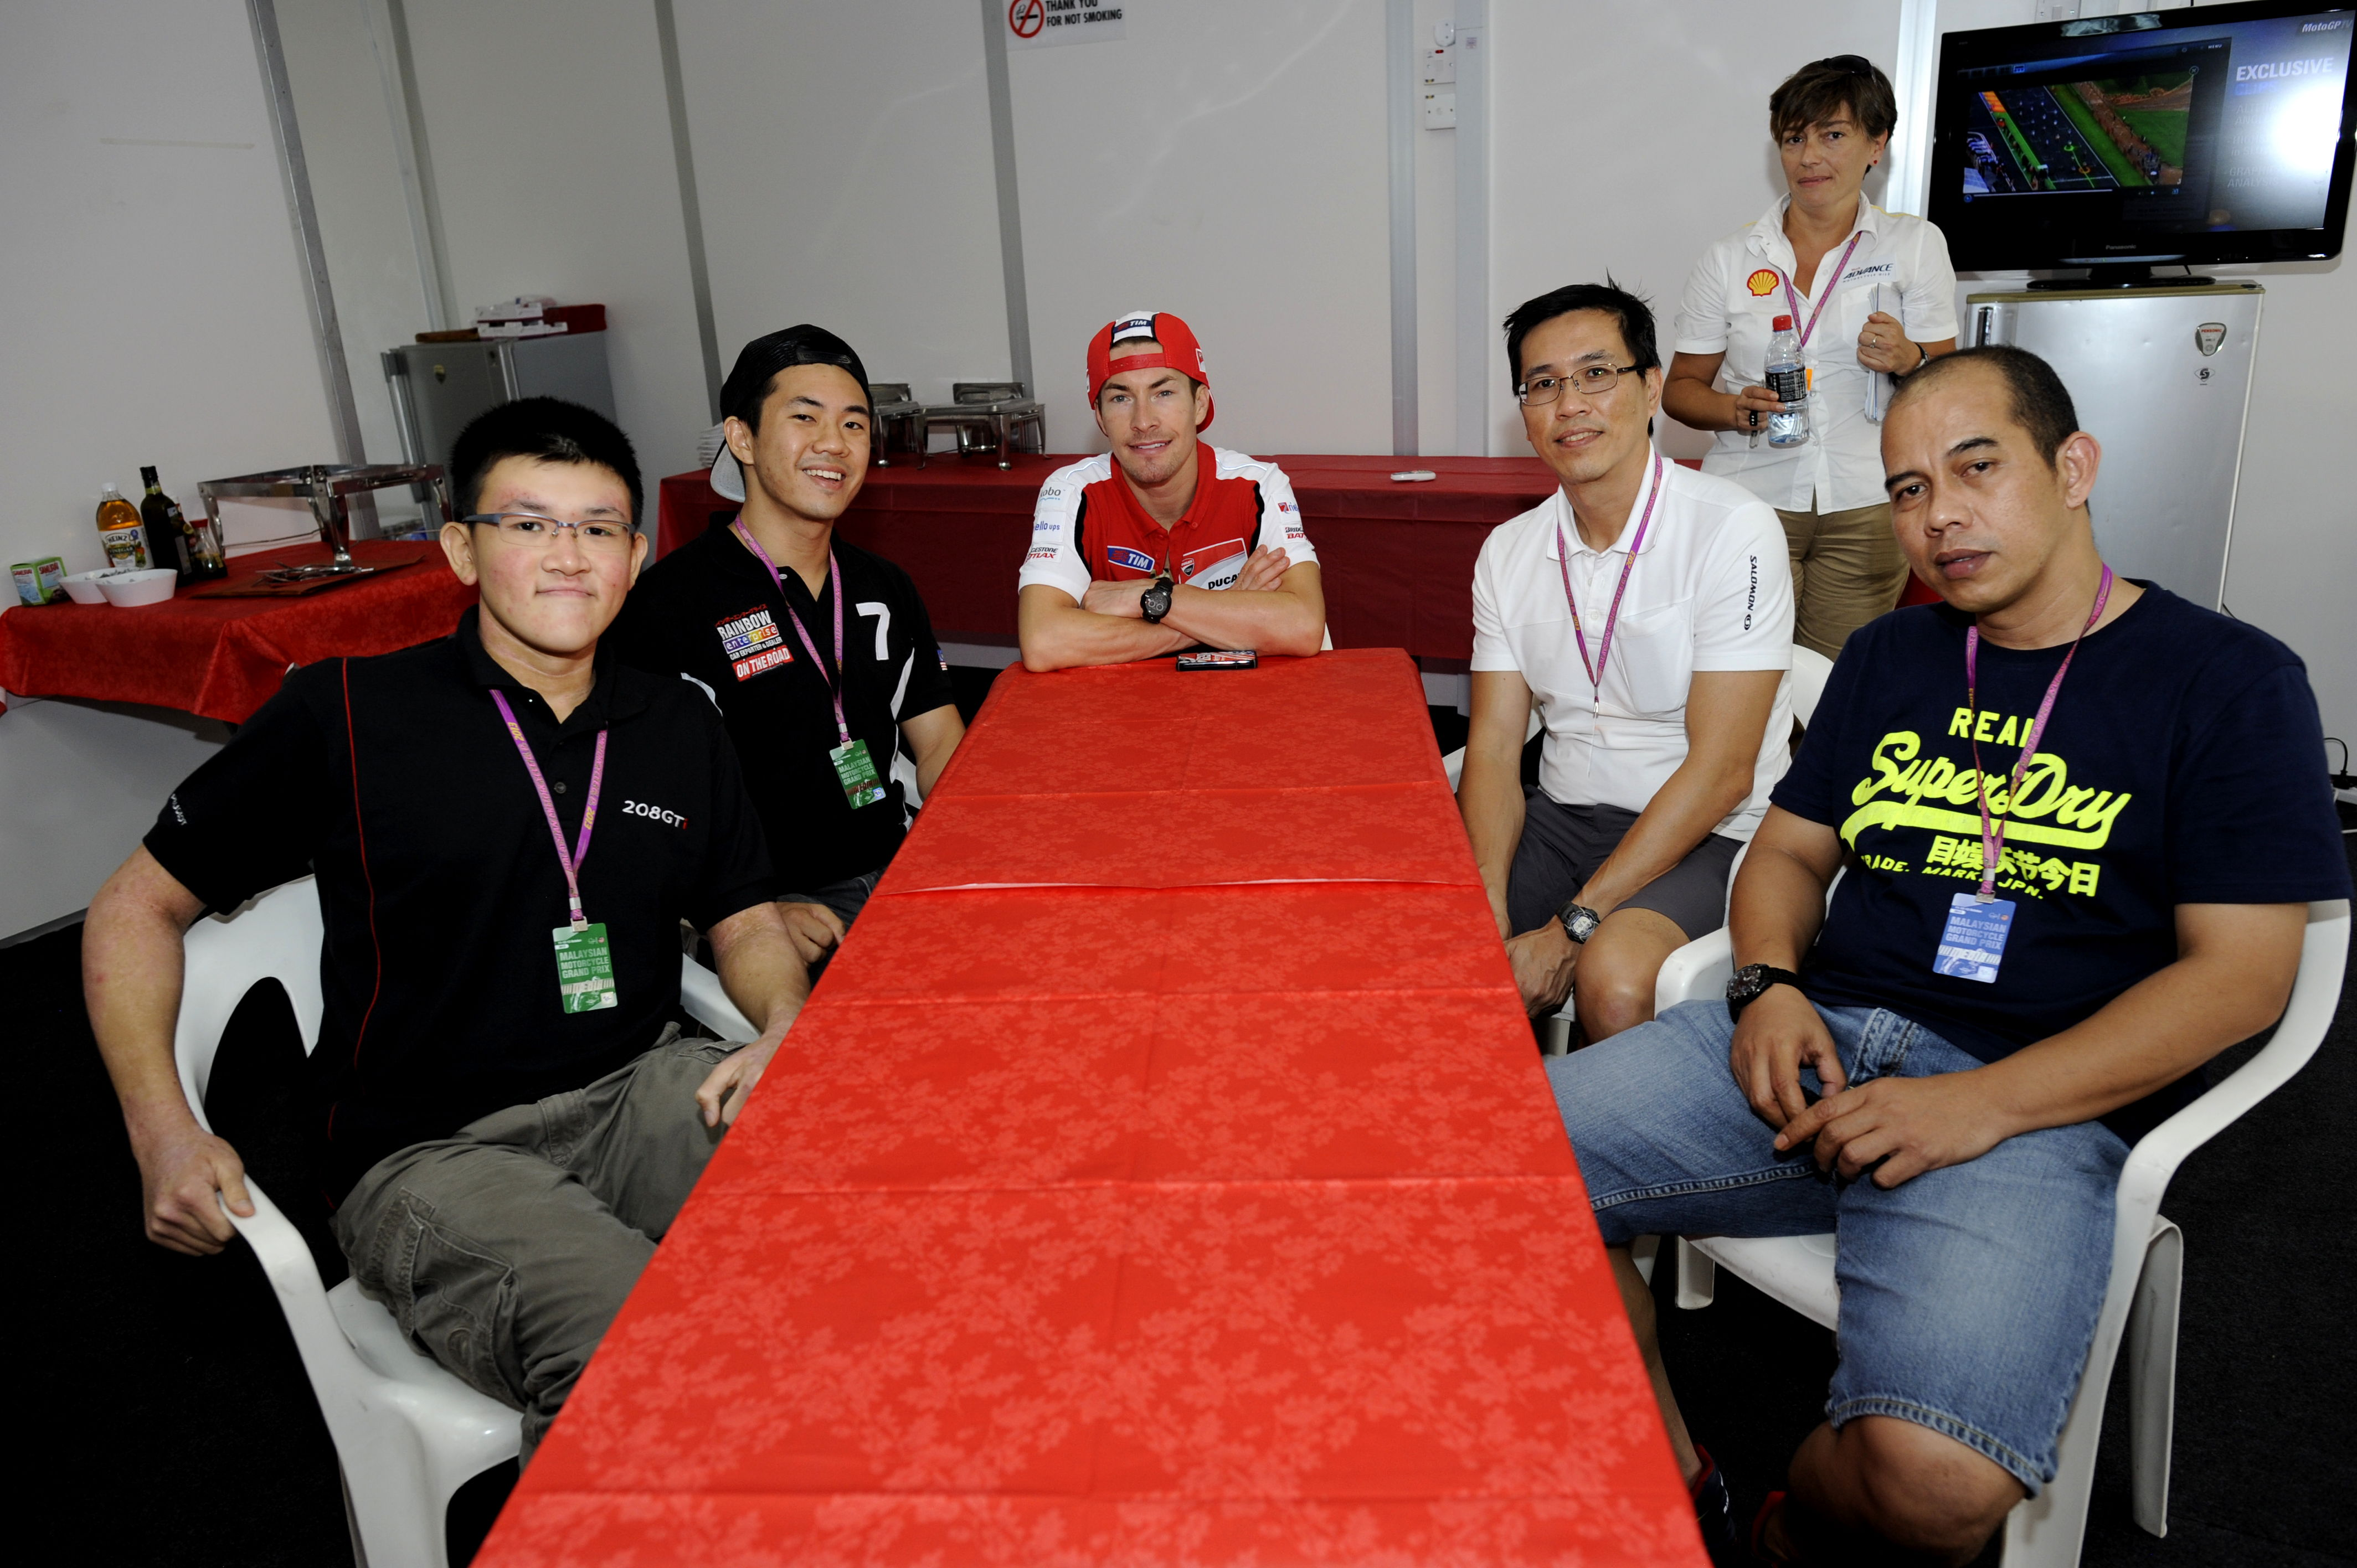 Huge honor to have the privilege to interview these MotoGP riders. Here's hoping F1 drivers are next!